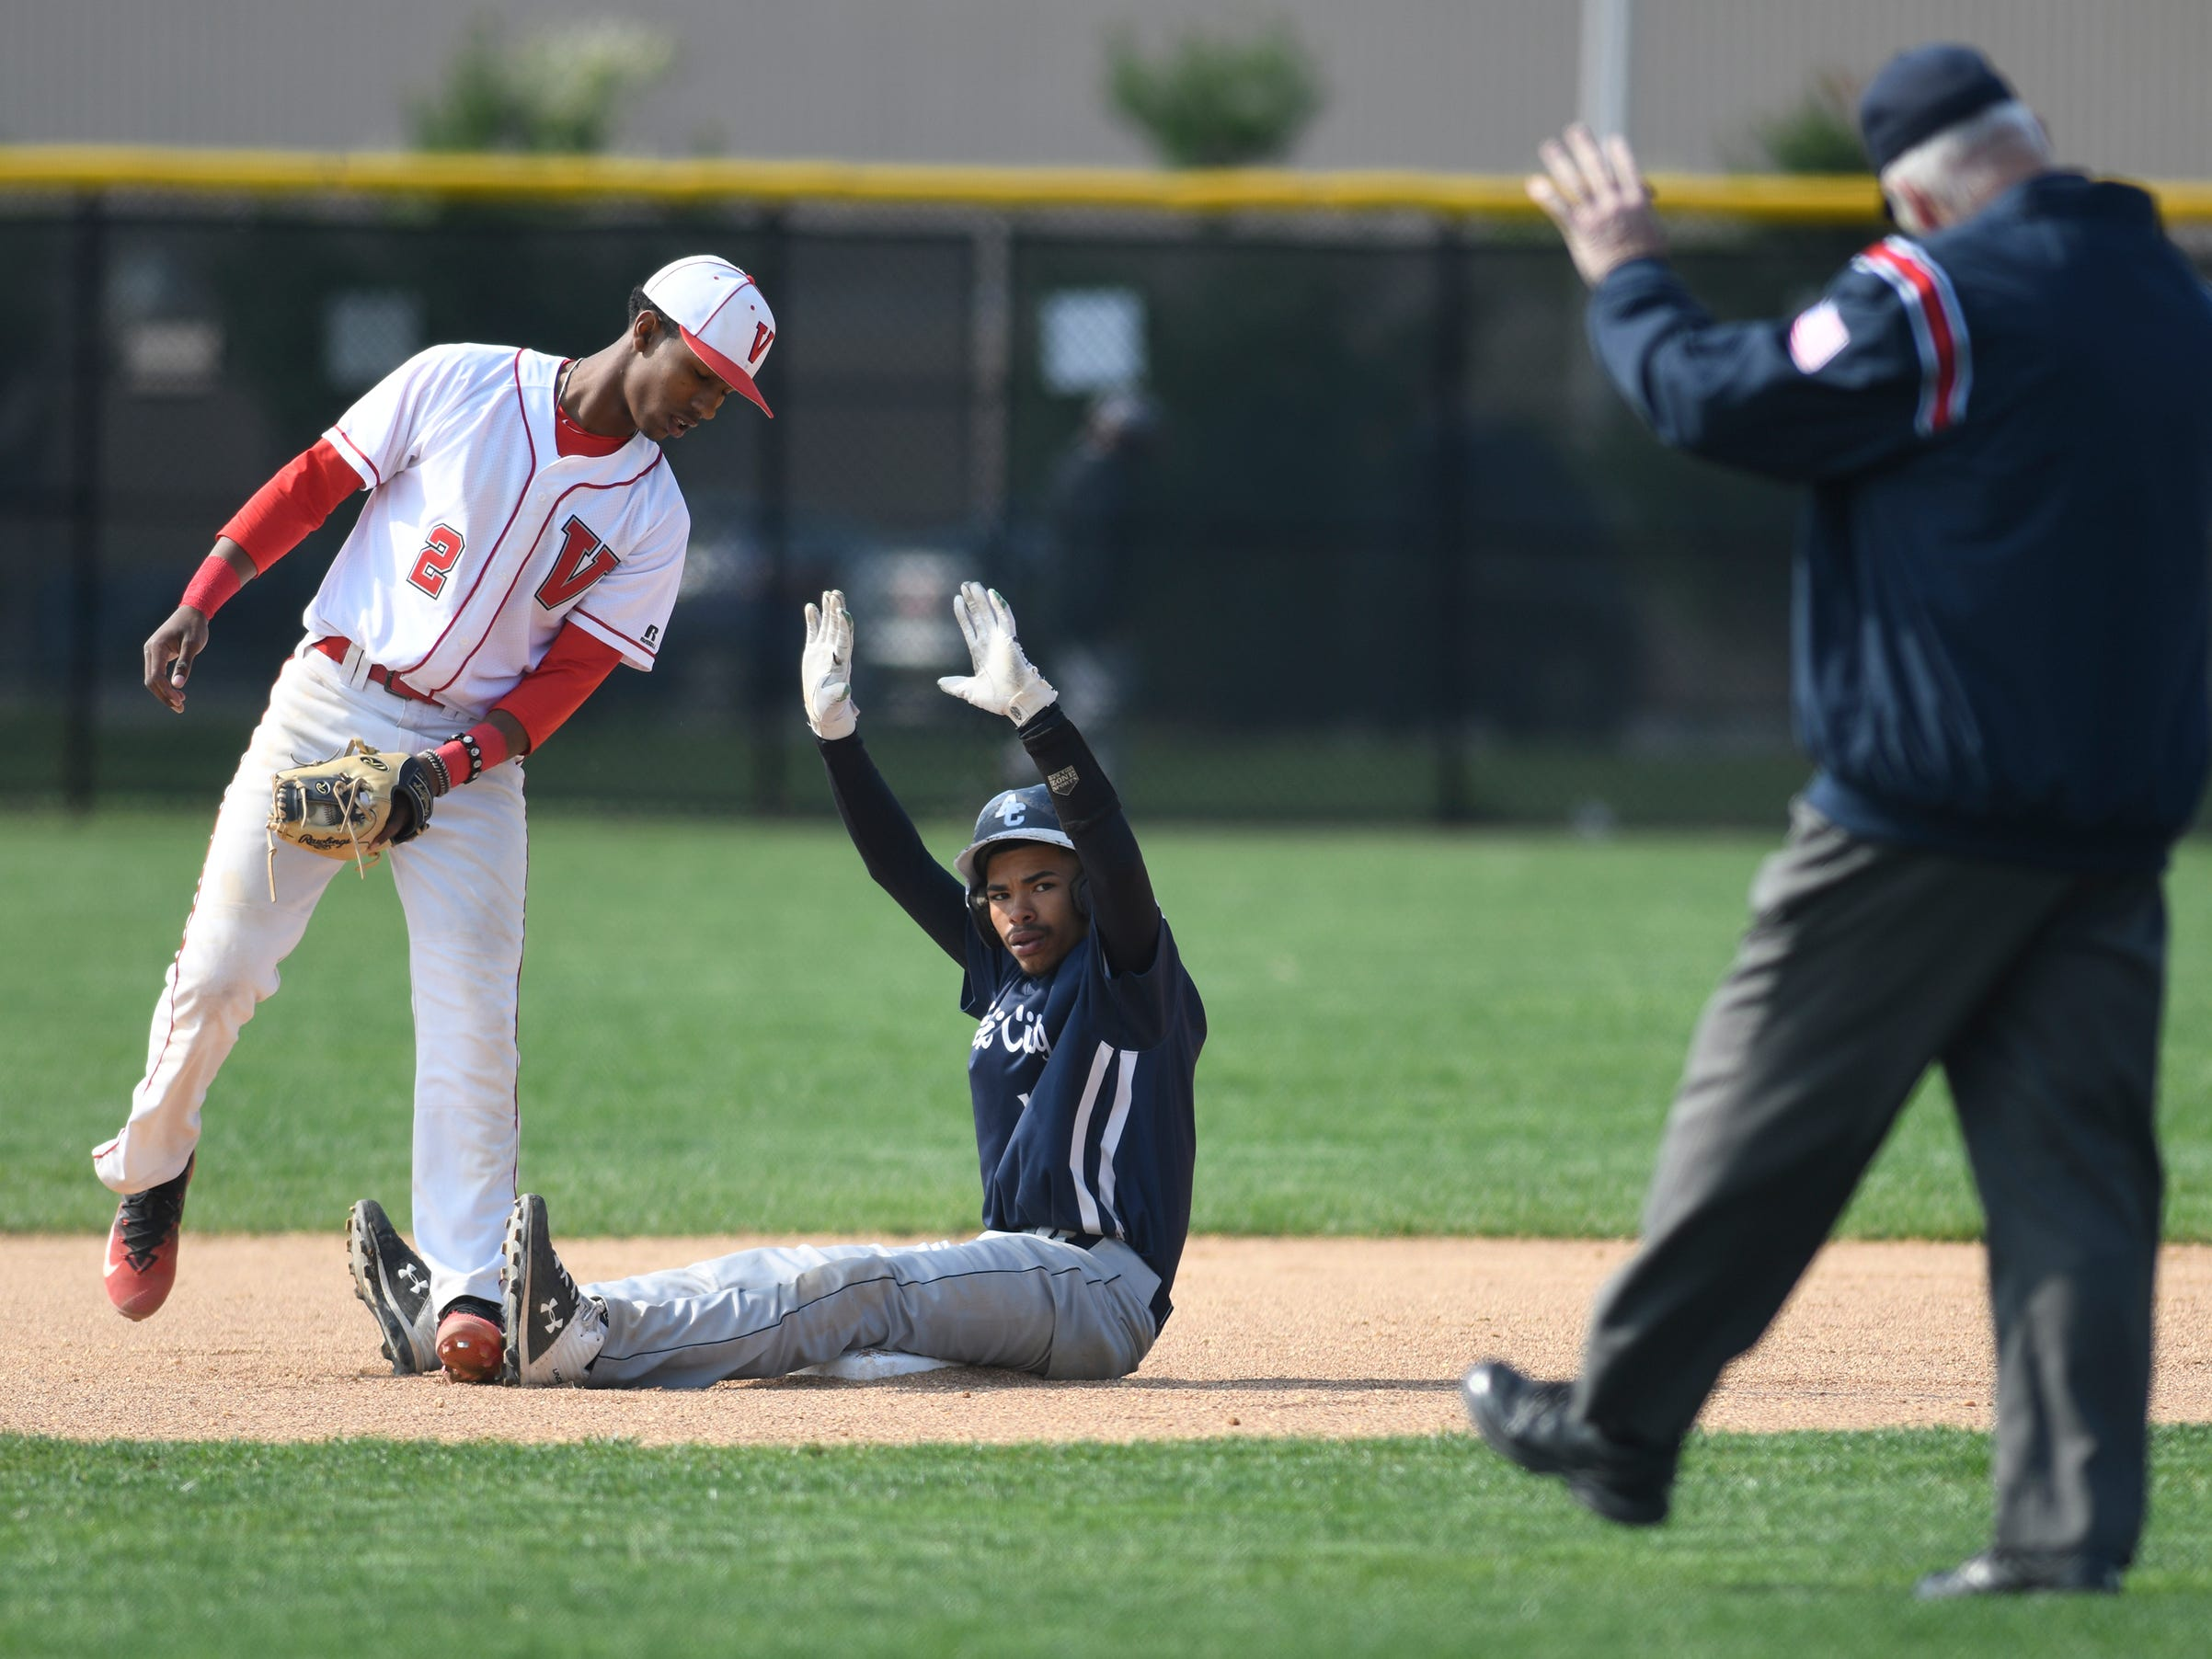 Vineland's Erv Bogan, left, plays second base during Wednesday's matchup against visiting Atlantic City. The Fighting Clan routed the Vikings 12-2.